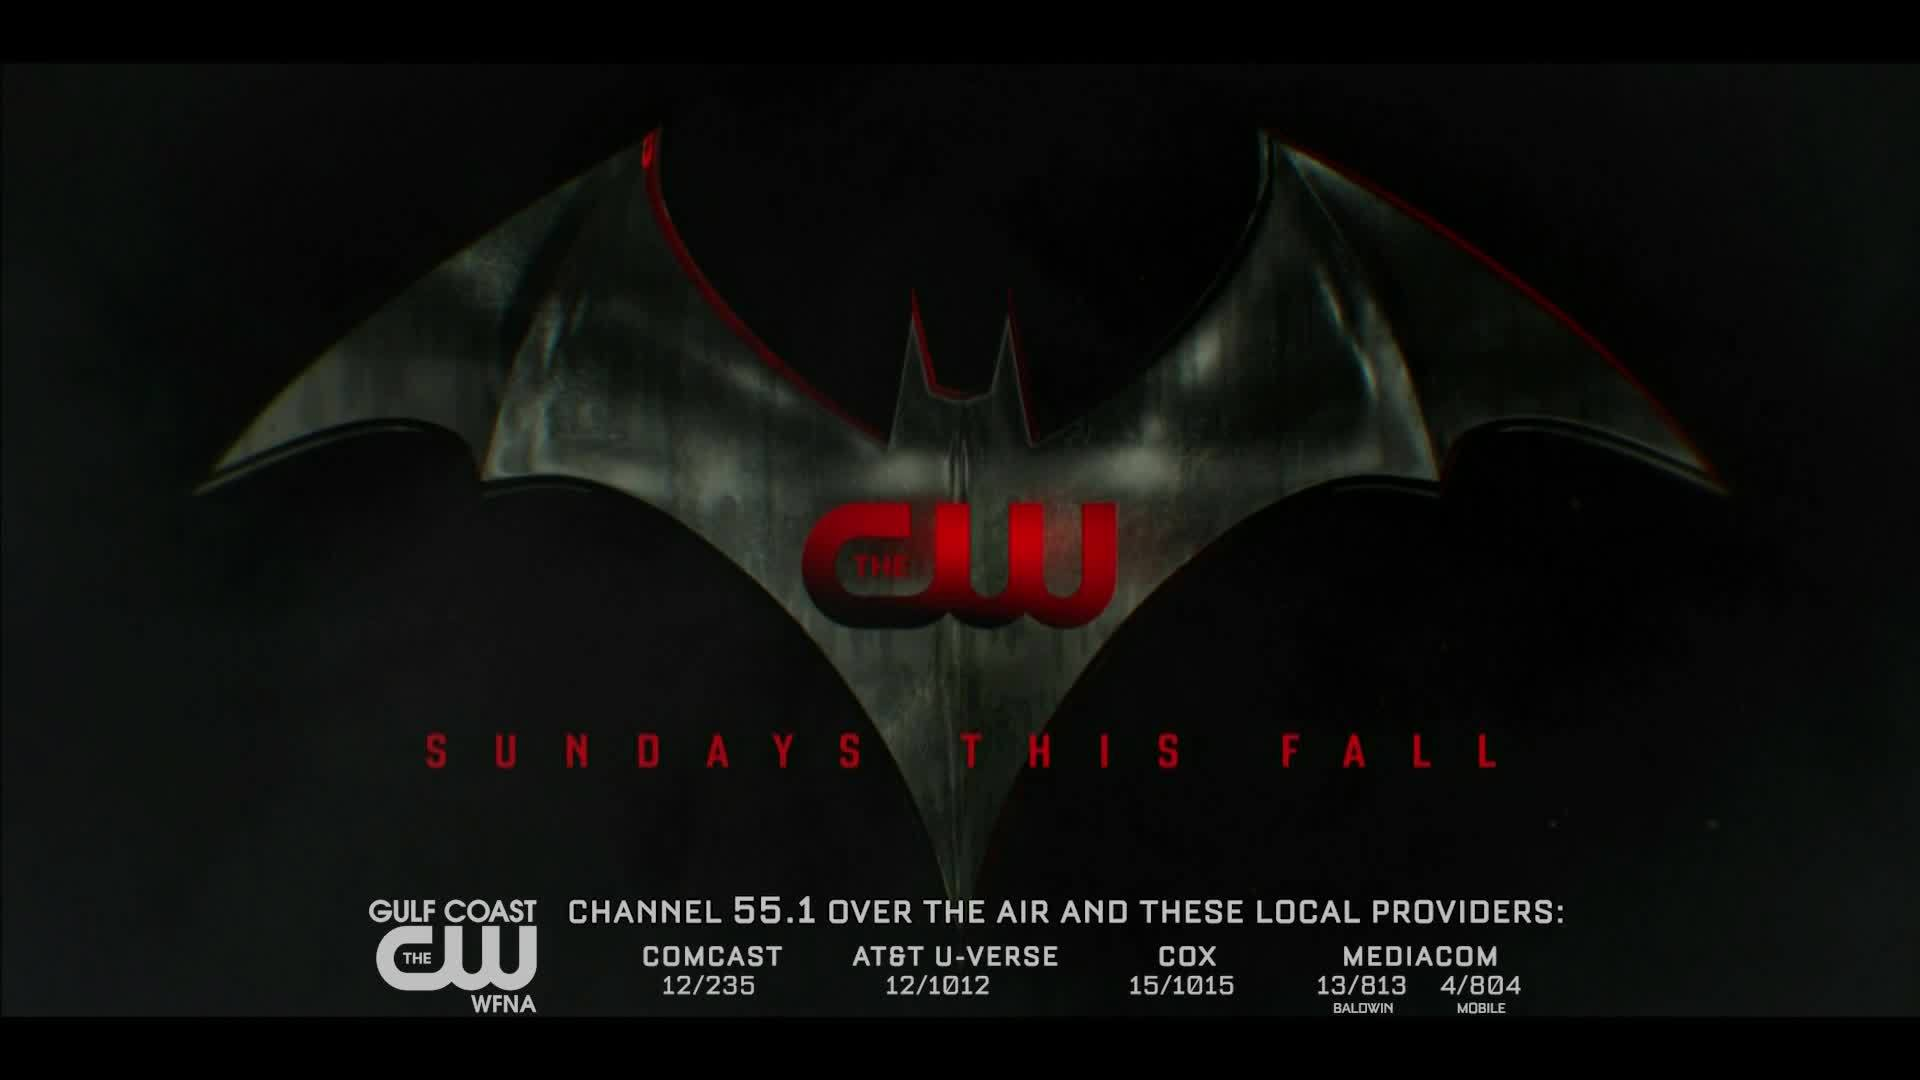 Batwoman (not Batman!) is coming to the Gulf Coast CW Sundays this Fall.